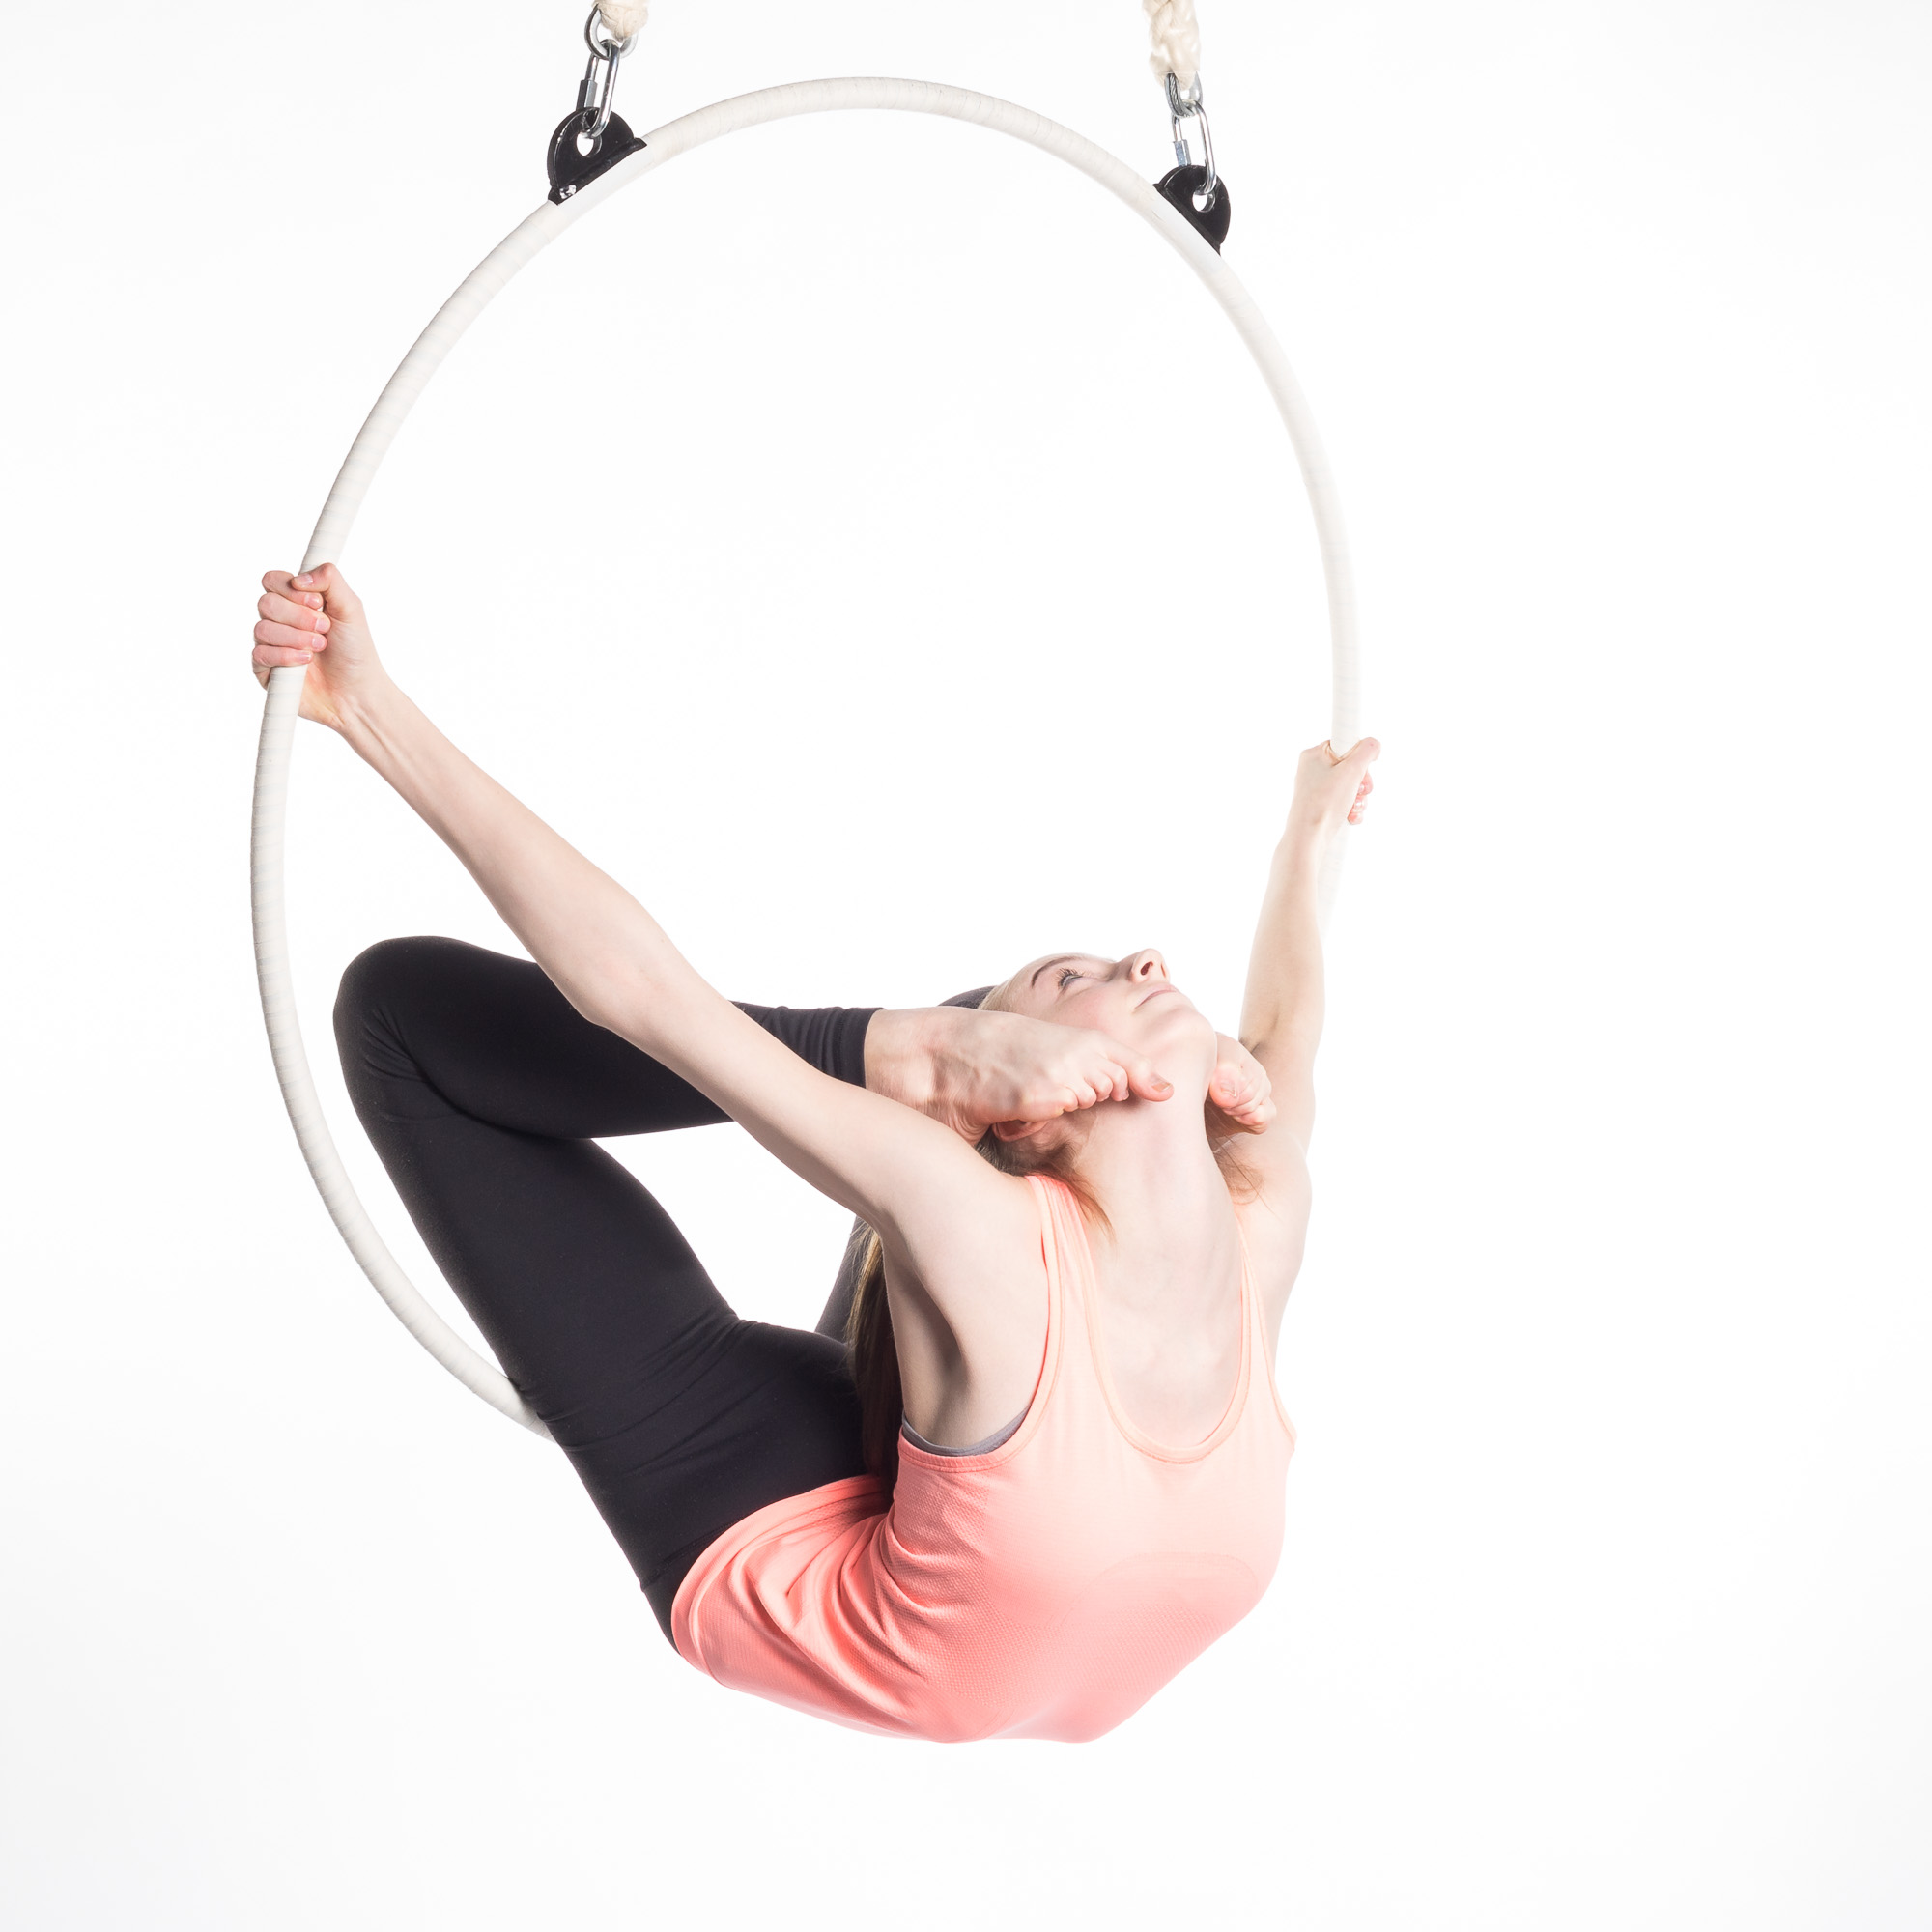 female-aerialist-on-hoop.jpg